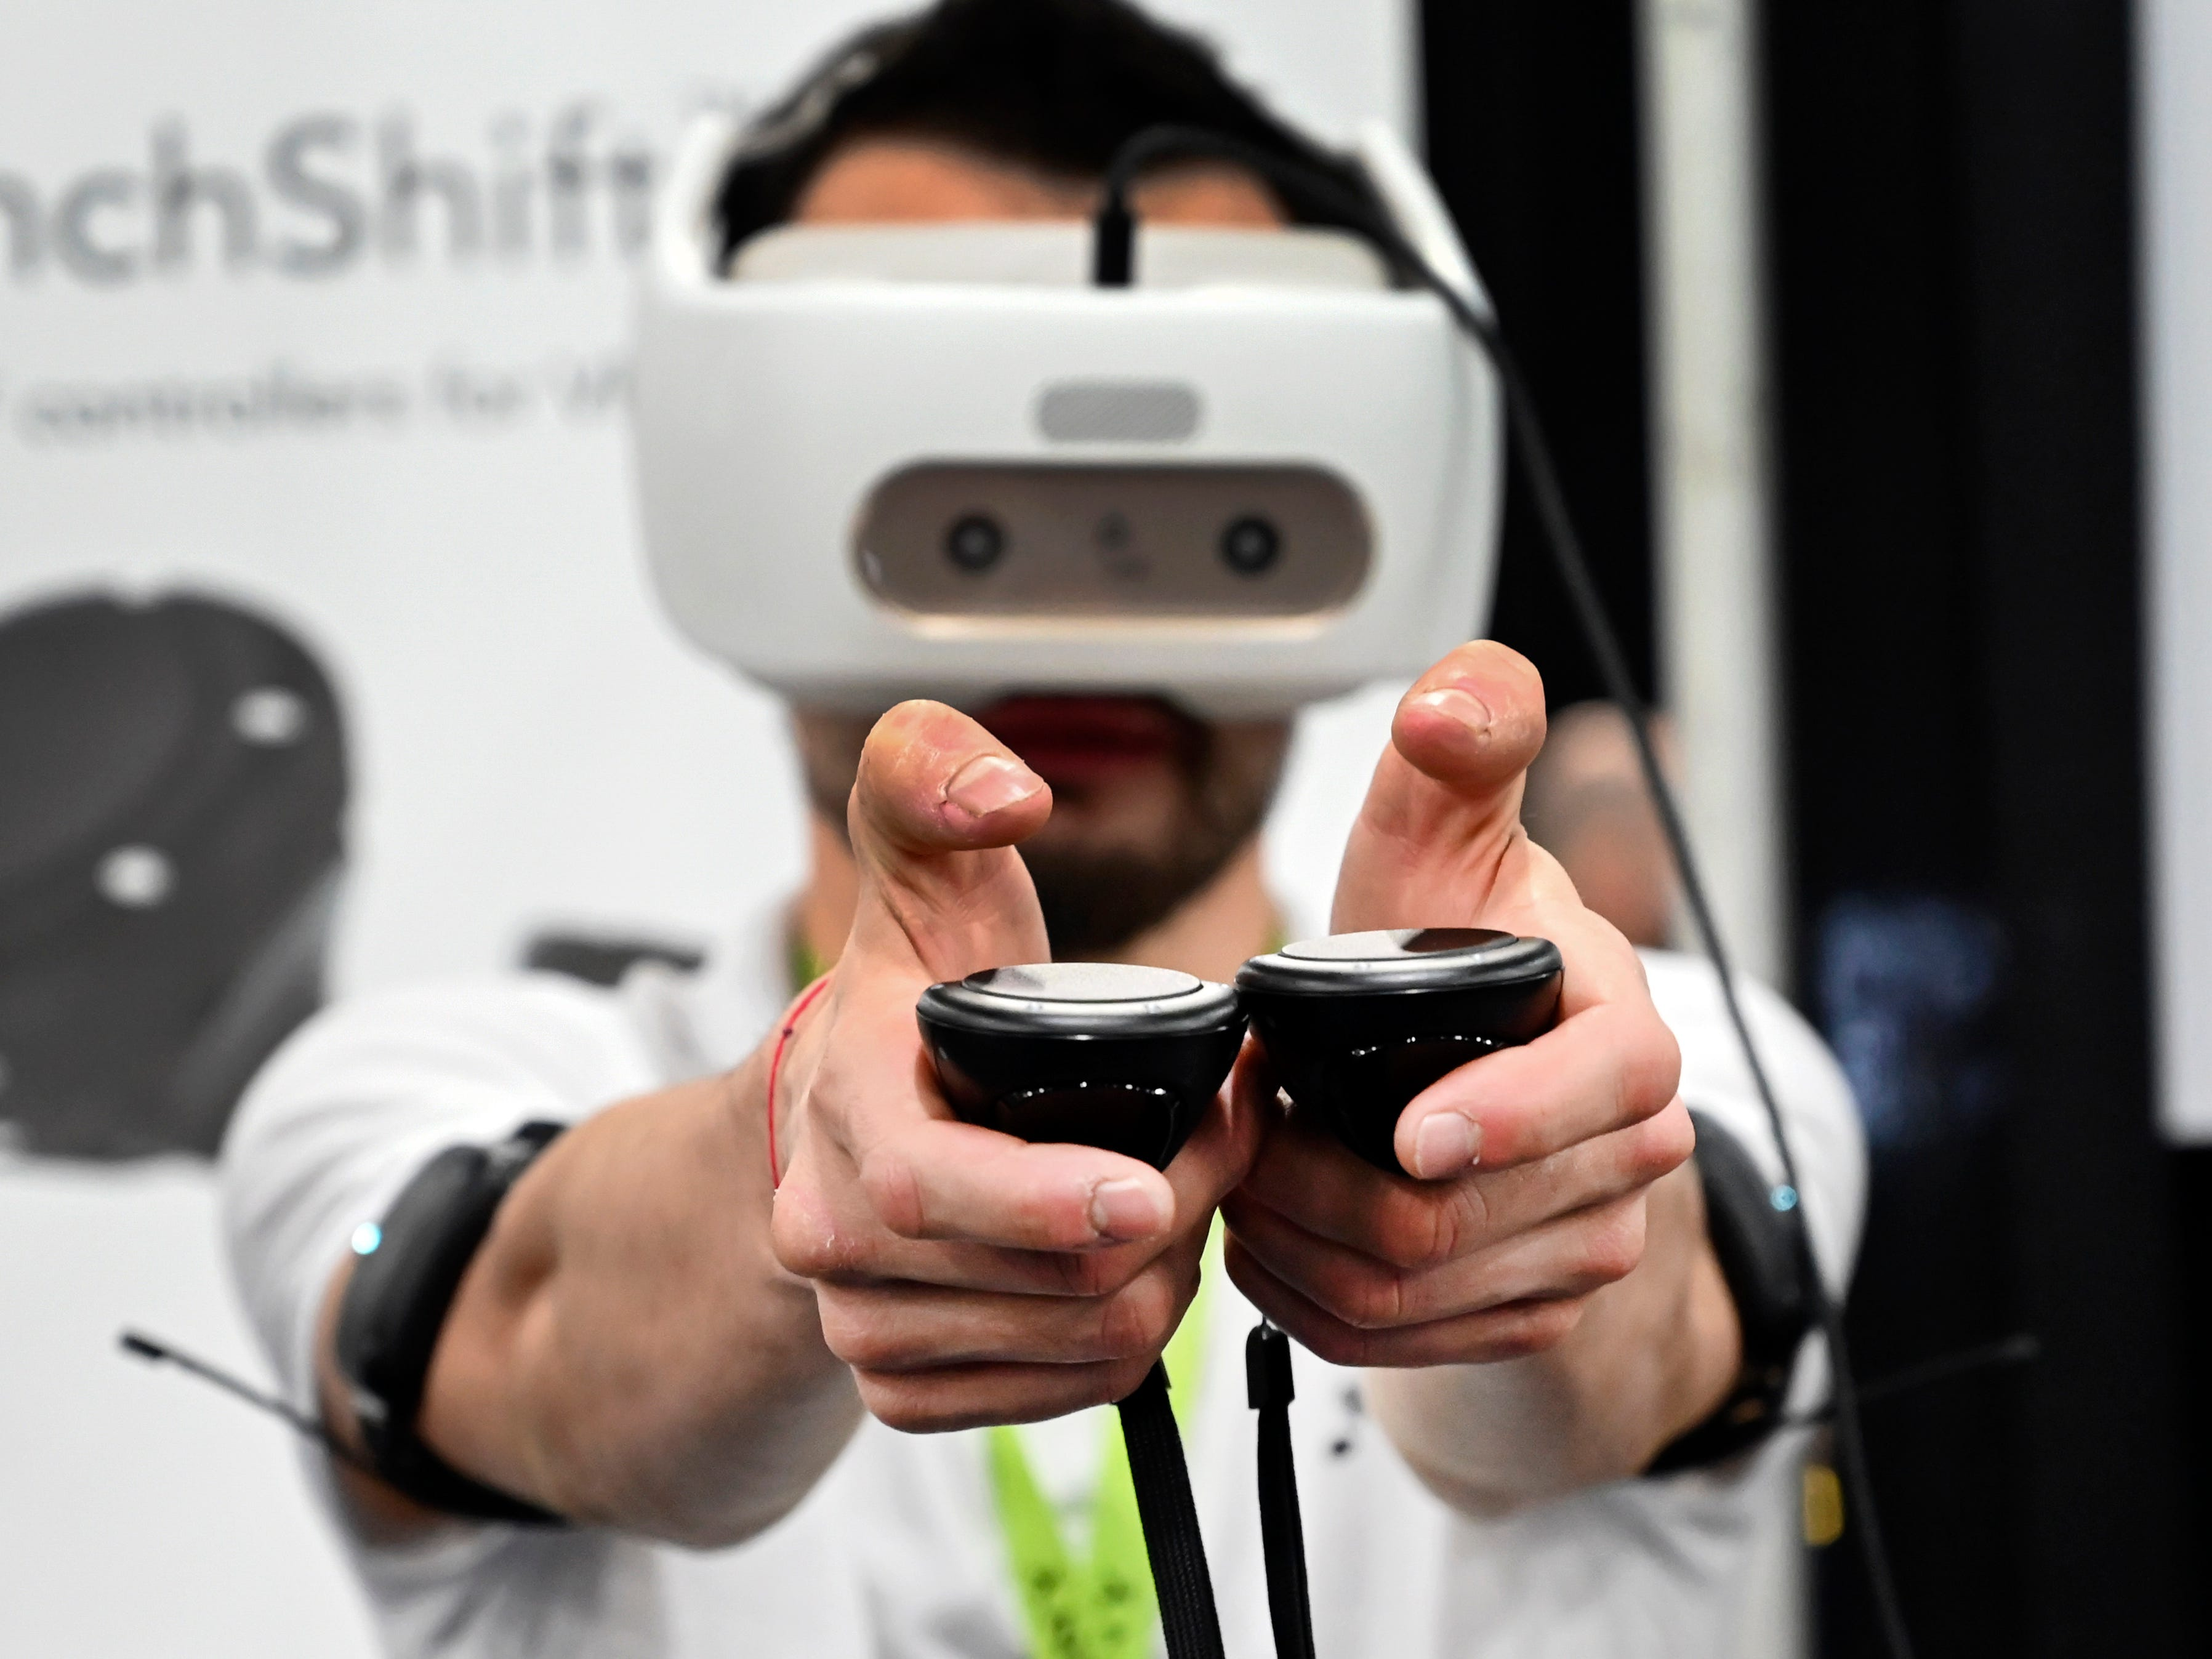 January 6, 2019; Las Vegas, NV, USA;  Vitalii Ivanov of Finch Technologies from the Russian Federation, demonstrates the company's Finchshift Controllers at CES Unveiled, a media preview event at the Mandalay Bay Convention Center. Finchshift Controllers allow tracking of hands and body. Mandatory Credit: Robert Hanashiro- USA TODAY NETWORK ORIG FILE ID:  20190106_ajw_usa_981.jpg